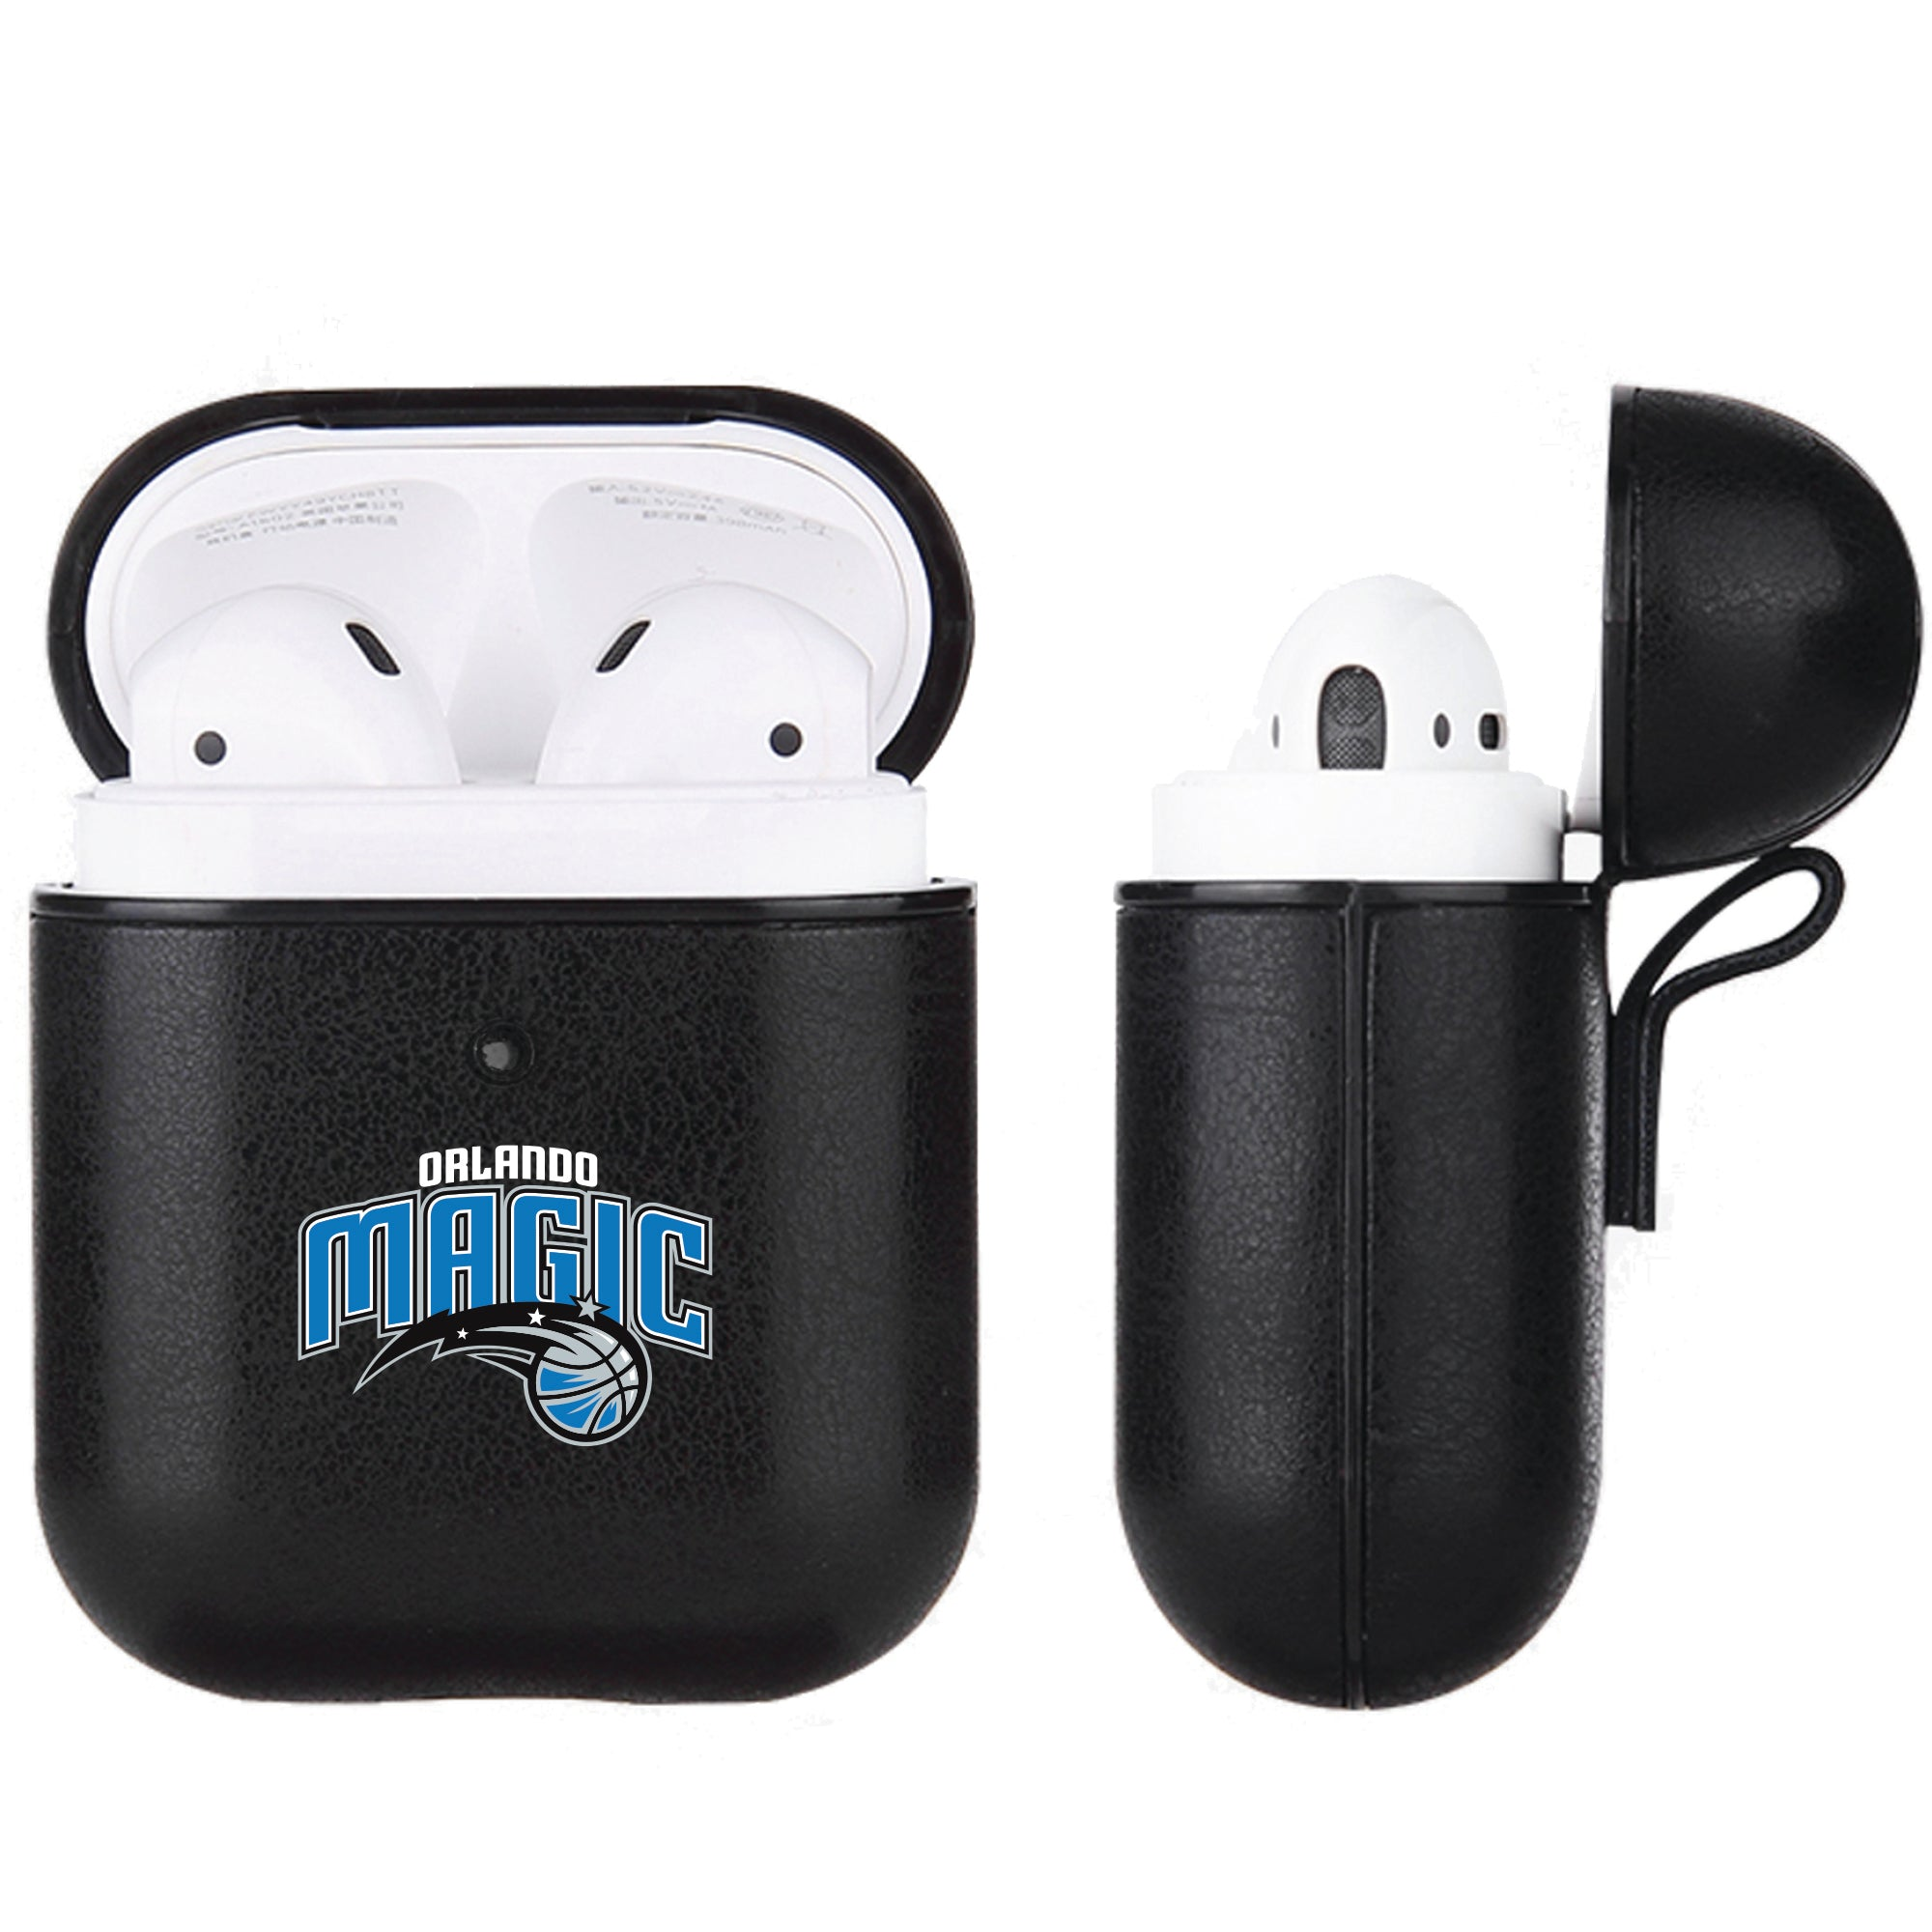 Orlando Magic Black Apple Air Pod Leather Case